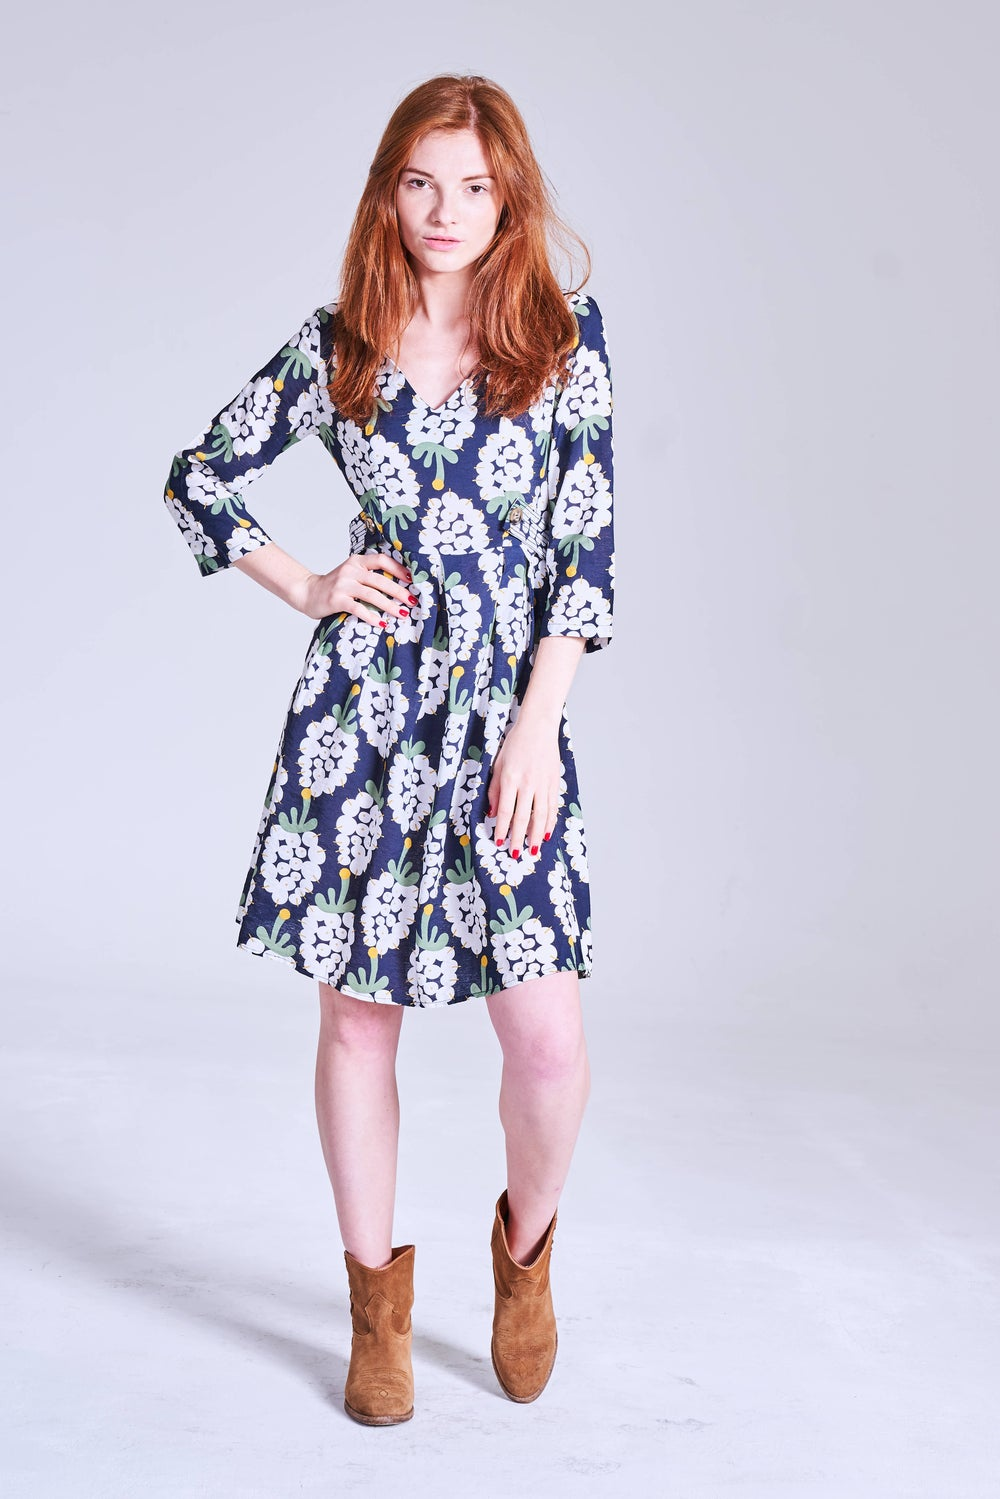 Image of Vestido Baleares navy grapes